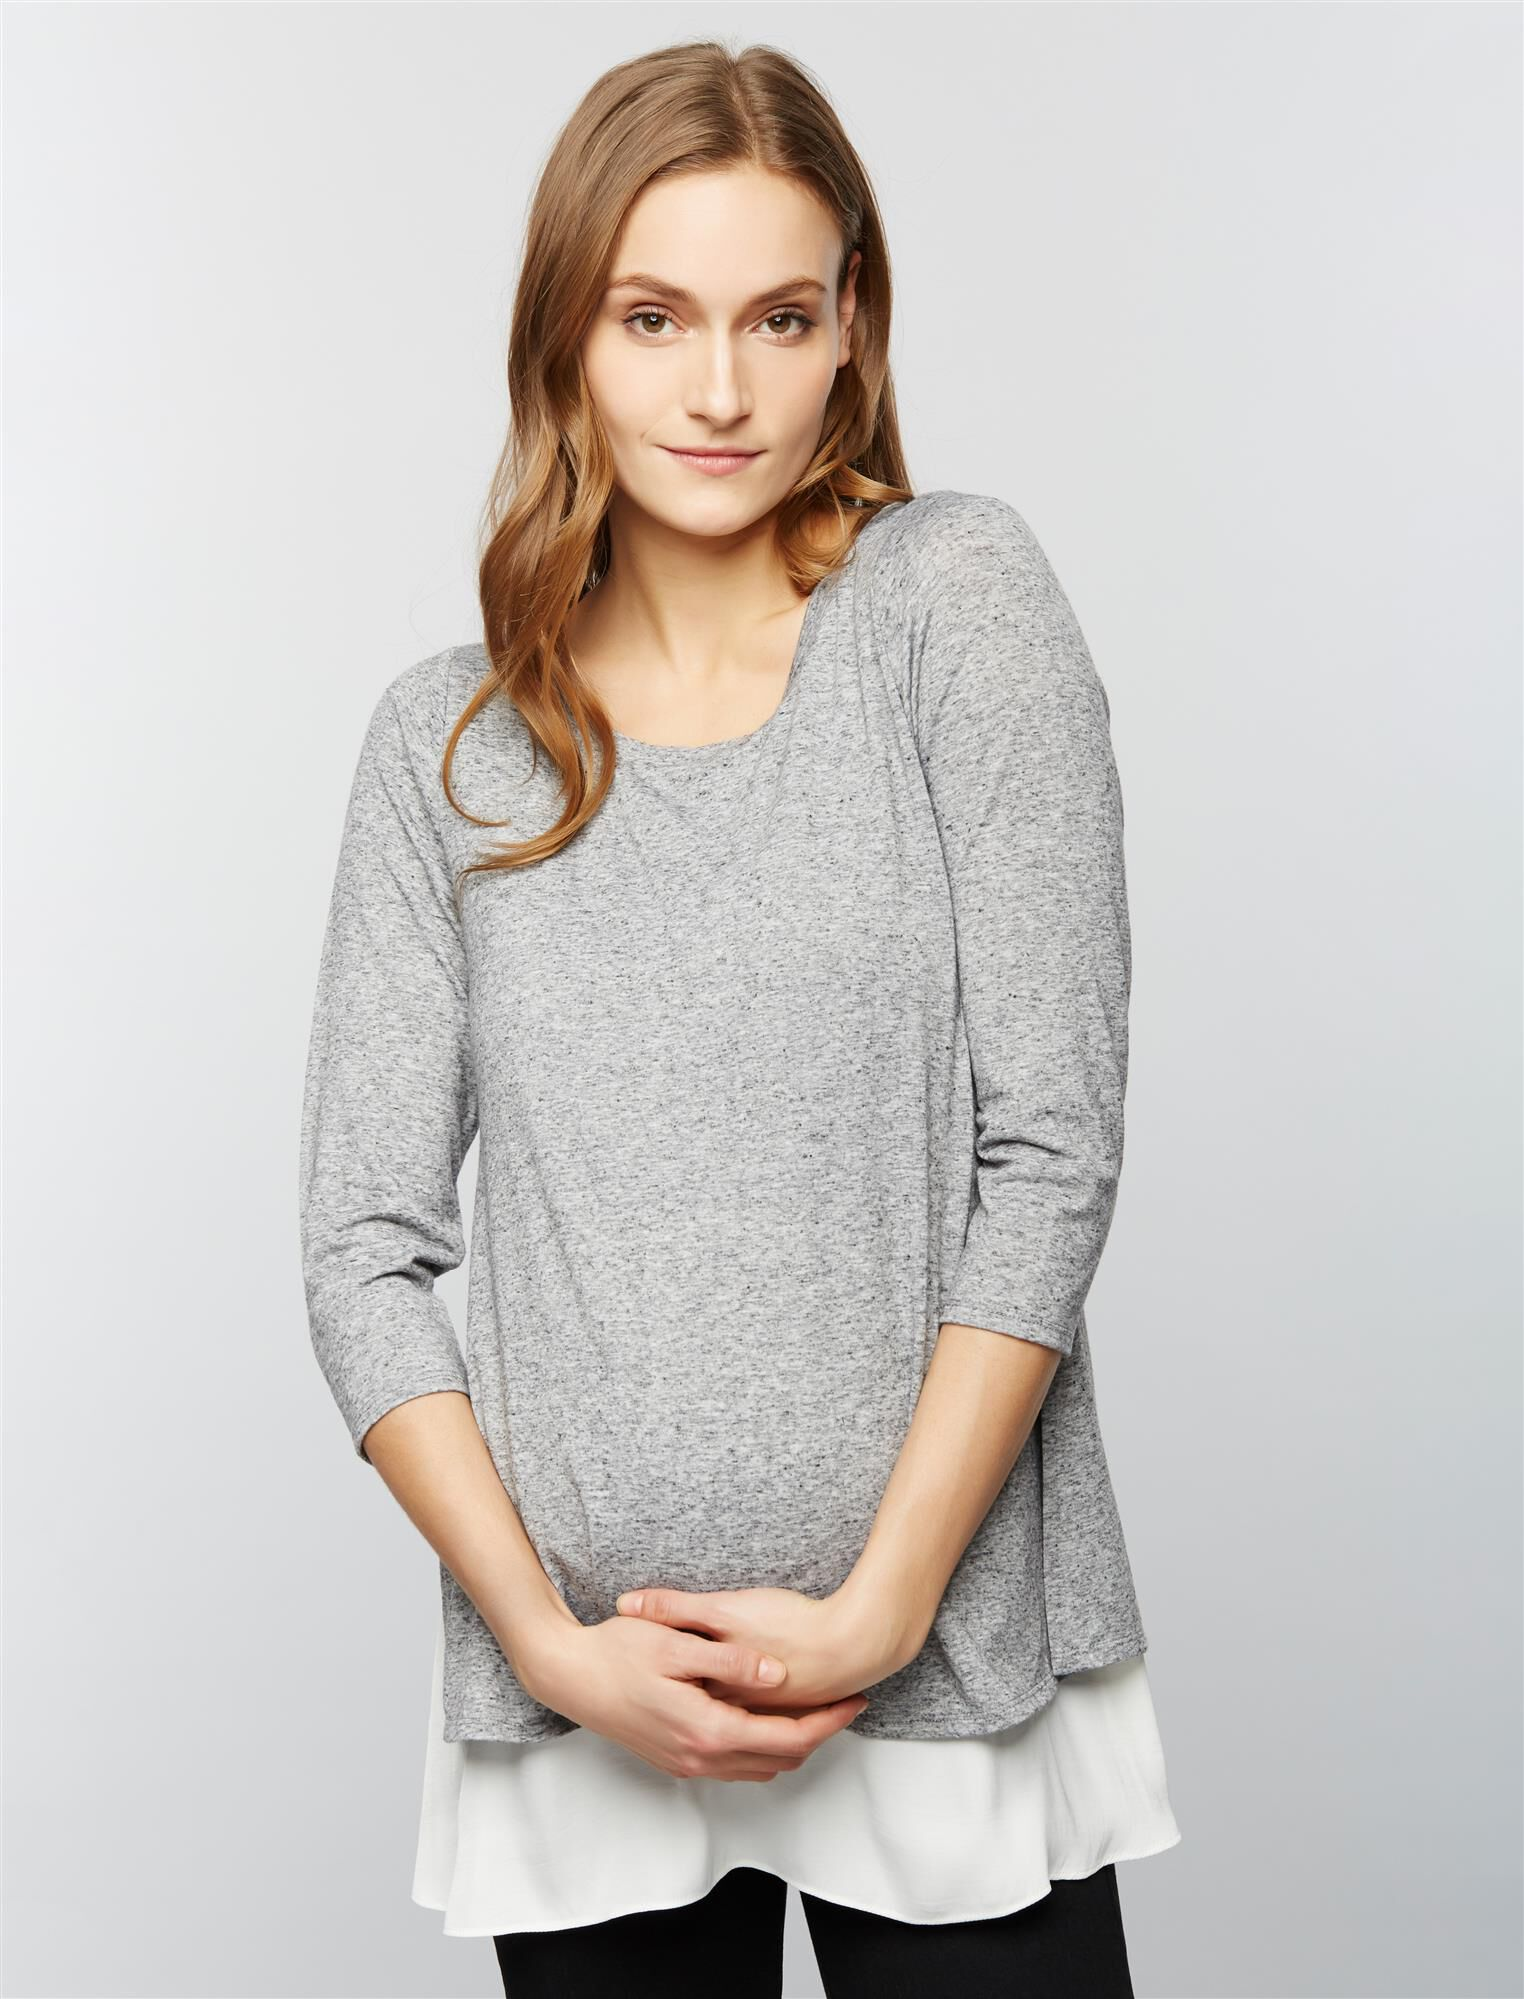 Lift Up Babydoll Nursing Top